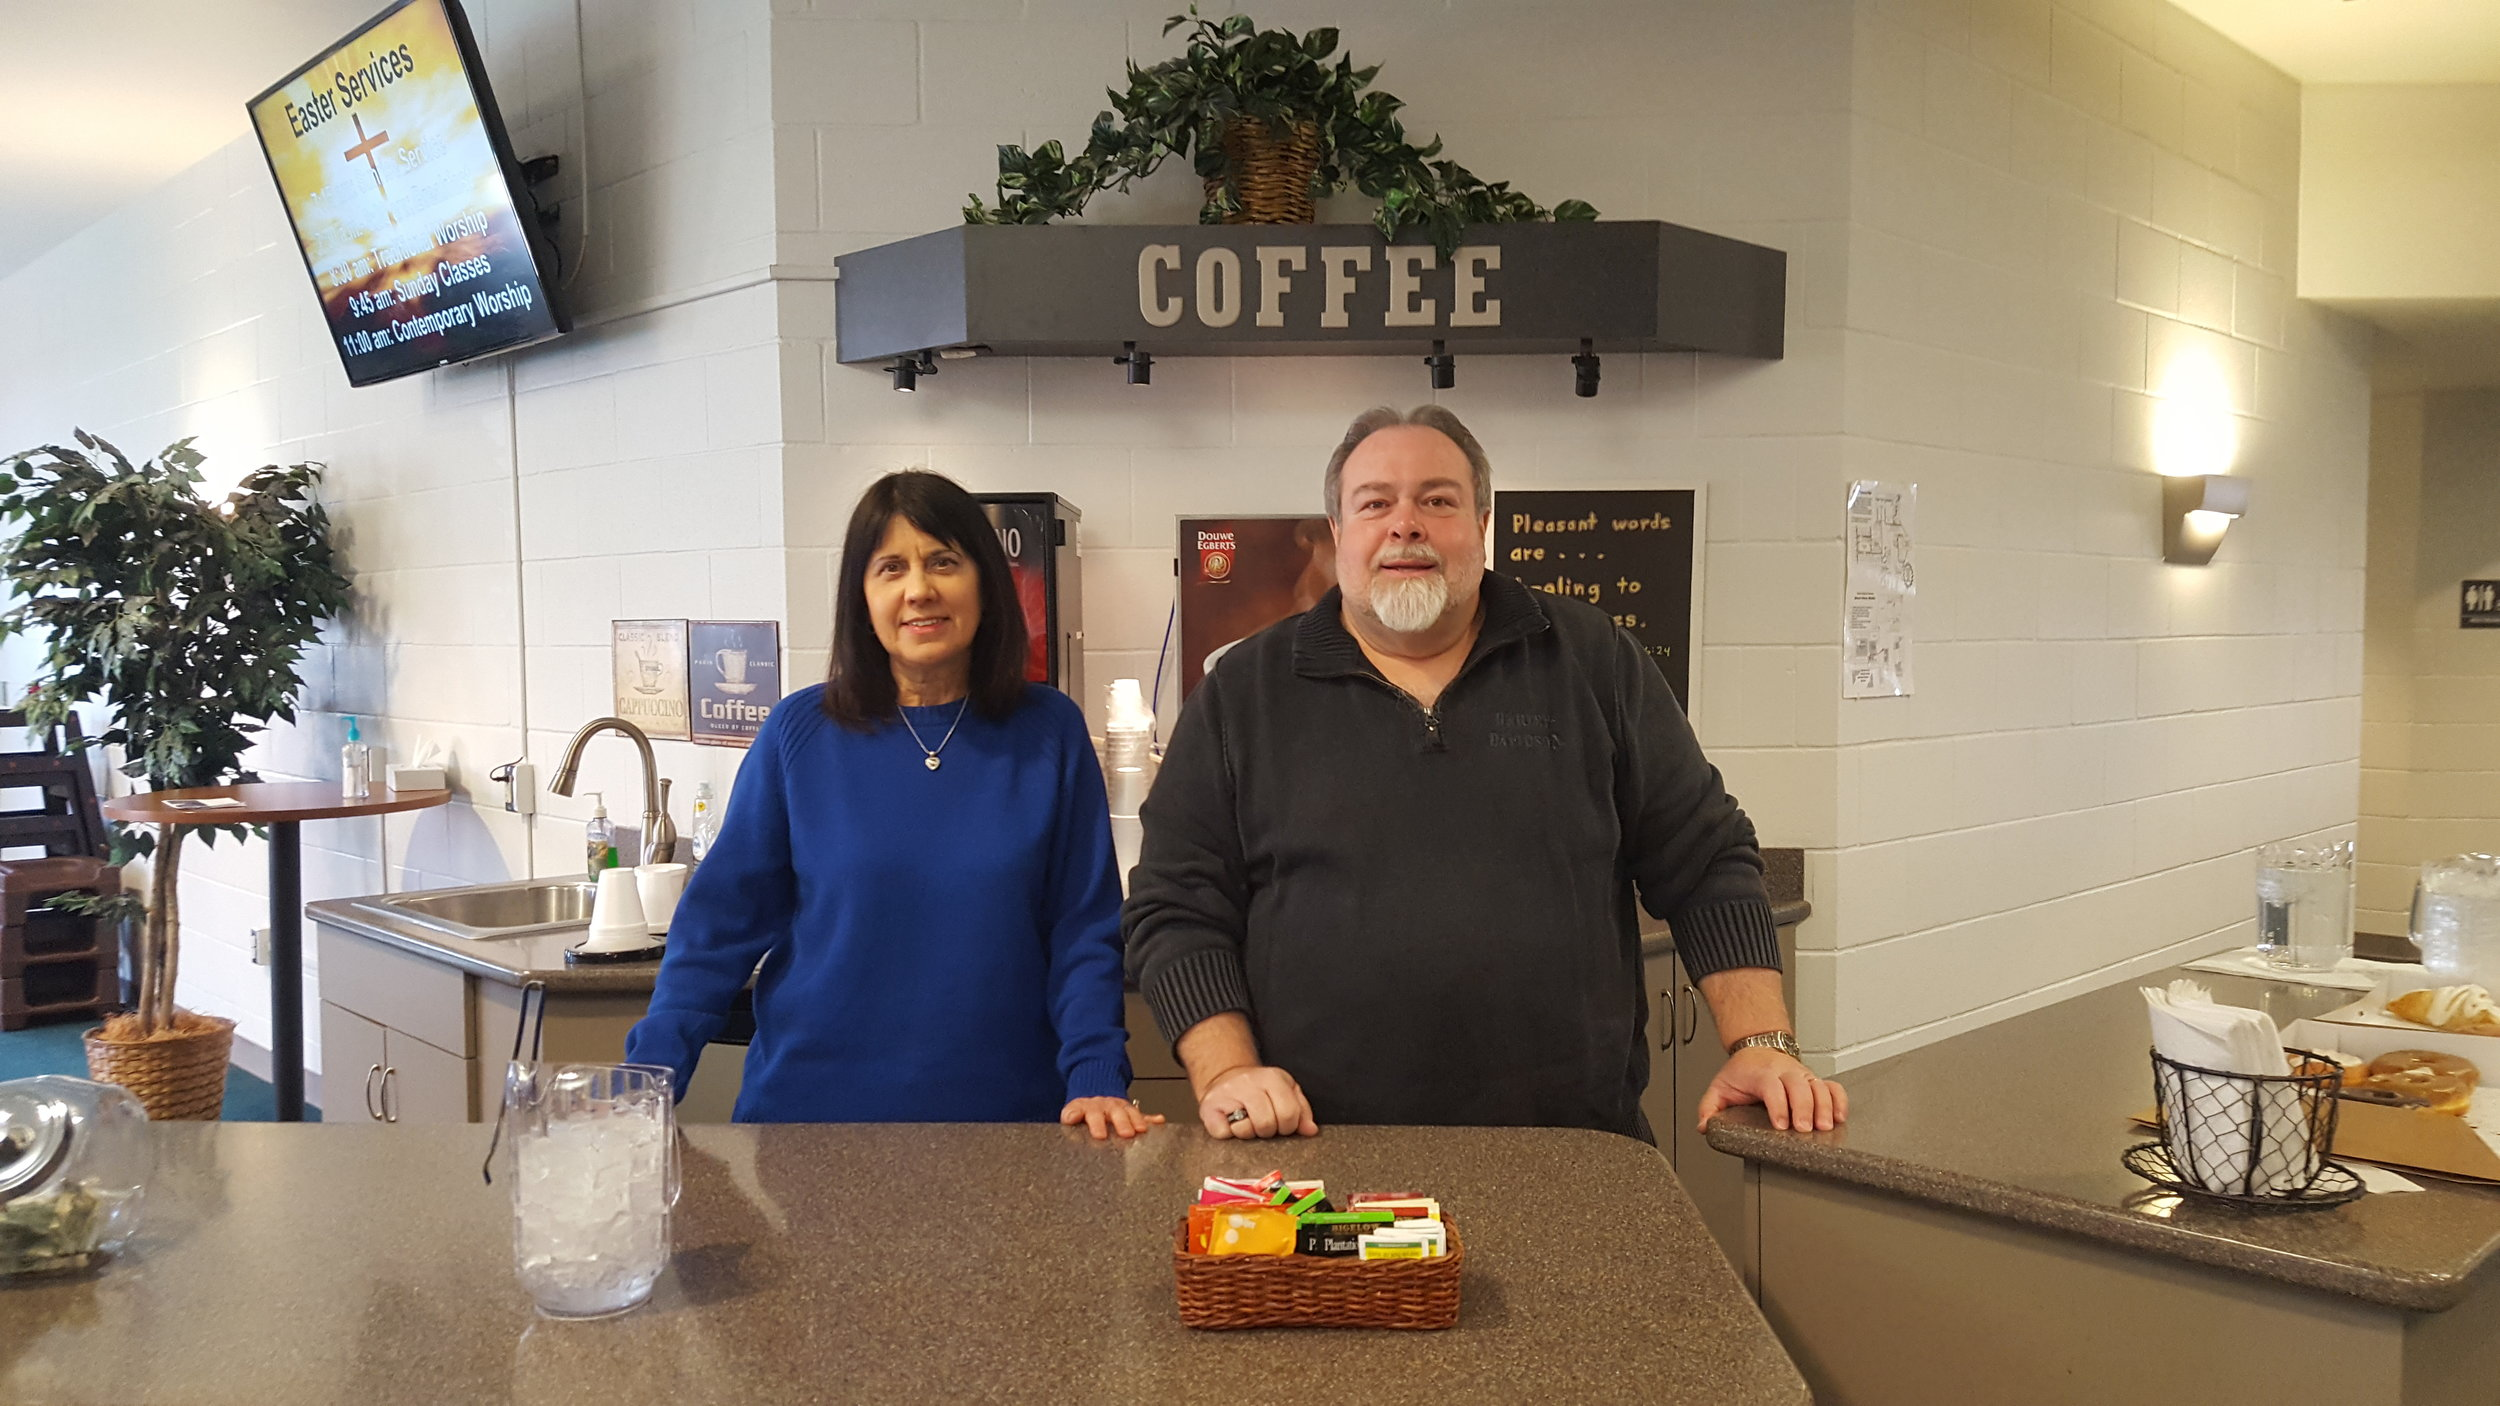 Hot beverages are available at the coffee bar - help yourself any time!